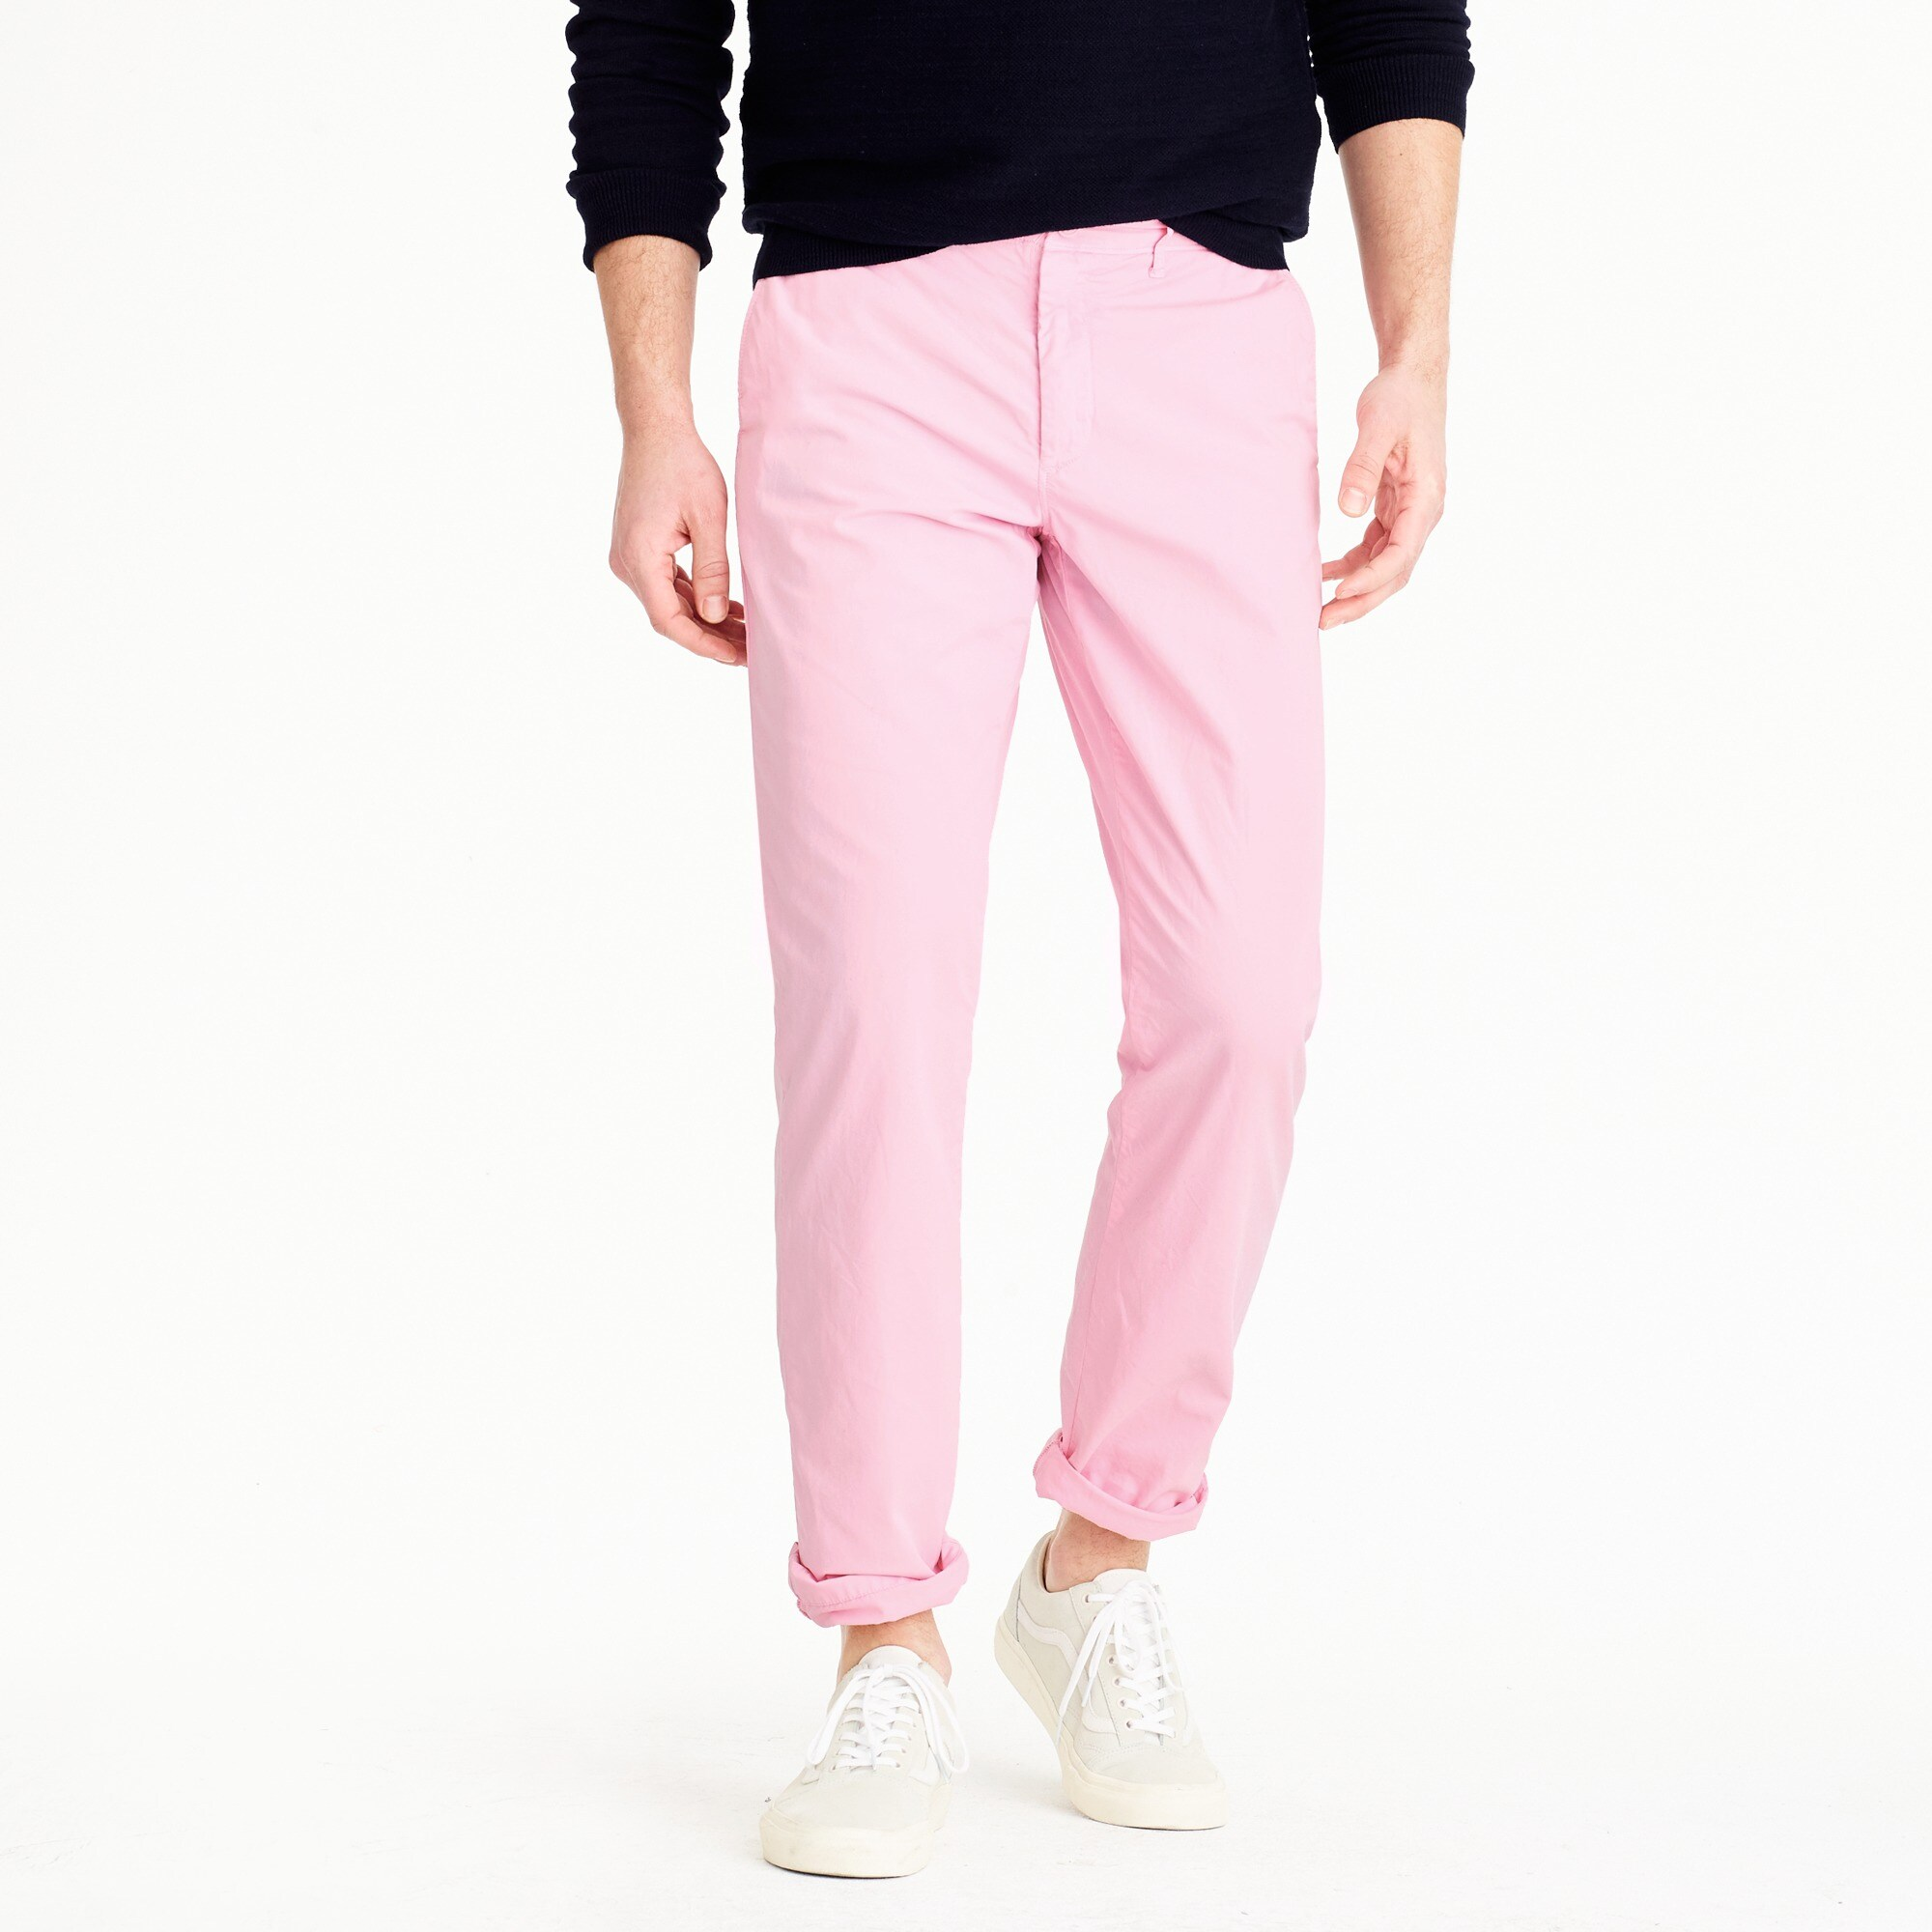 770 straight-fit pant in lightweight garment-dyed chino : men the prep shoppe